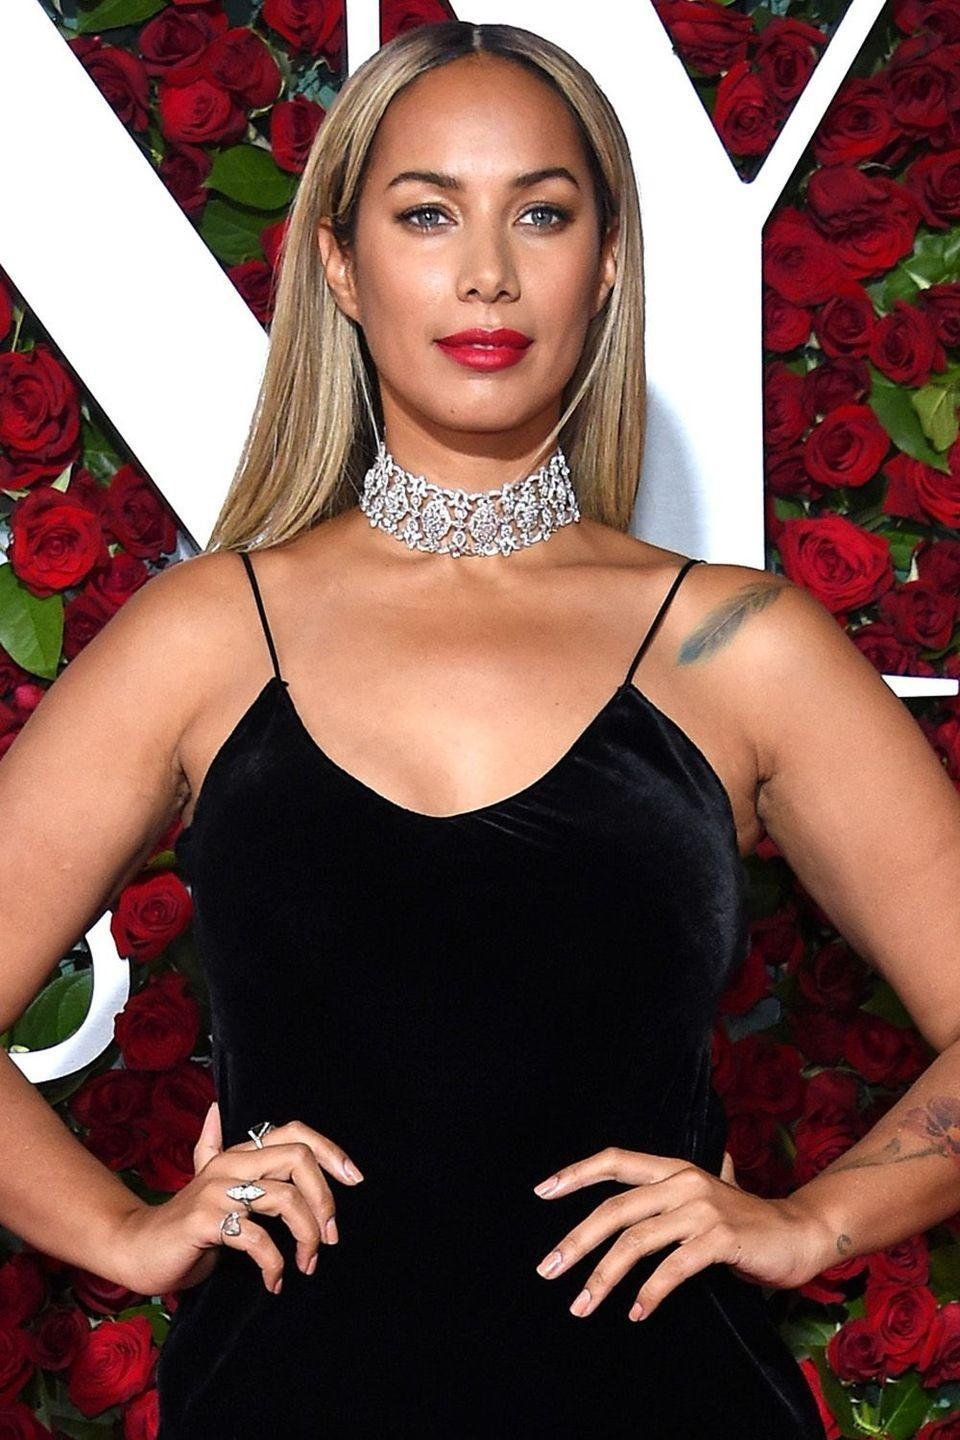 """<p>In a candid interview the singer revealed, """"I don't drink — I hate the taste of alcohol. When my debut single [Bleeding Love] went to No.1, I celebrated with non-alcoholic champagne.""""</p><p><em>[h/t <a href=""""http://www.glamourmagazine.co.uk/gallery/teetotal-celebrities"""" rel=""""nofollow noopener"""" target=""""_blank"""" data-ylk=""""slk:Glamour U.K."""" class=""""link rapid-noclick-resp"""">Glamour U.K.</a></em></p>"""